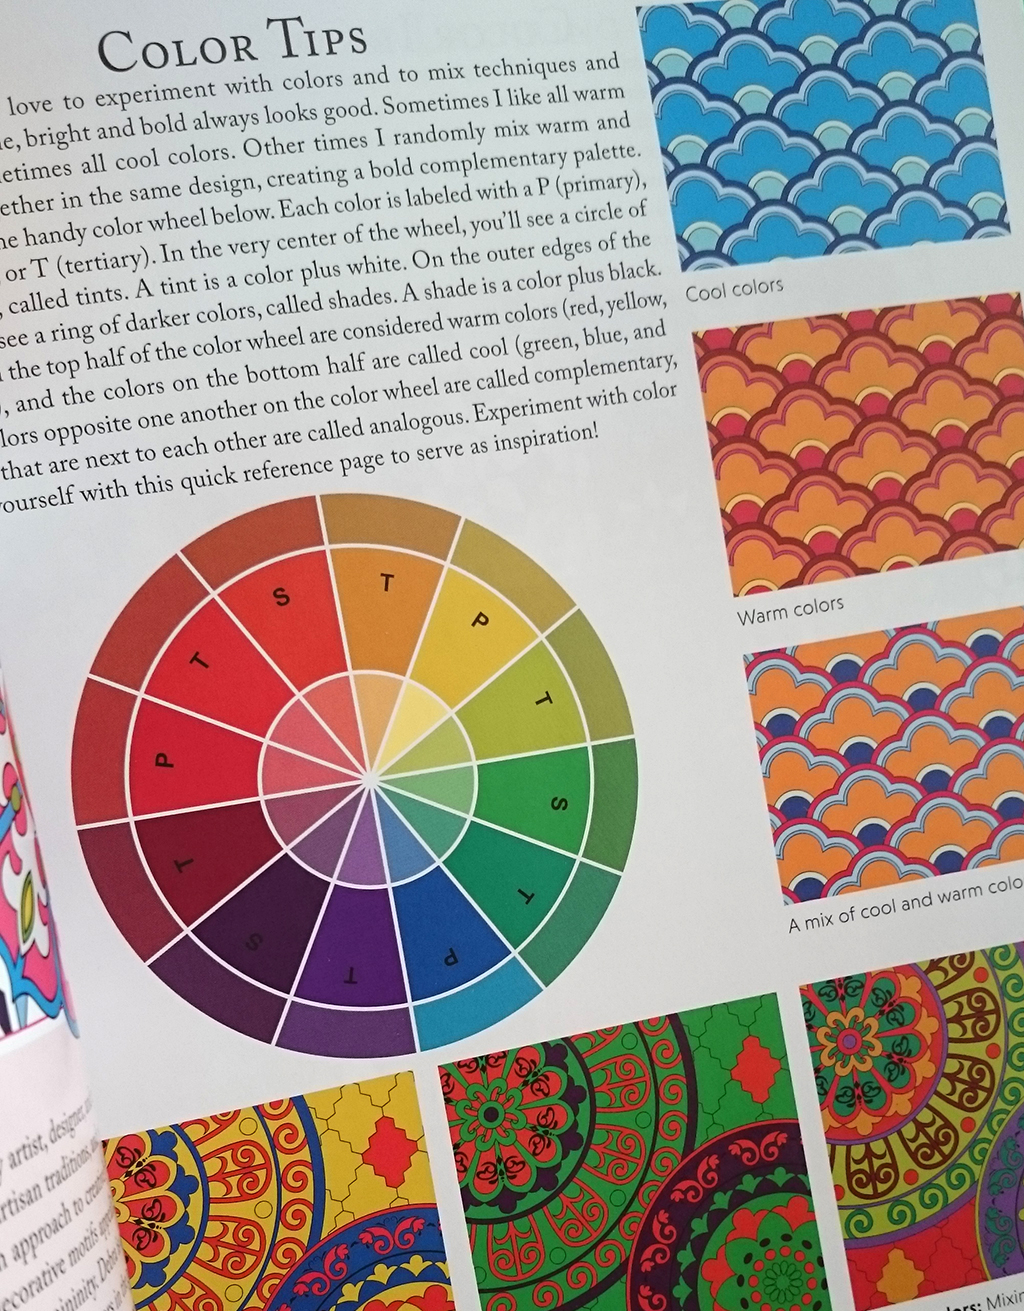 World-Beat-Designs-Mandalas-and-More-Coloring-Book-02